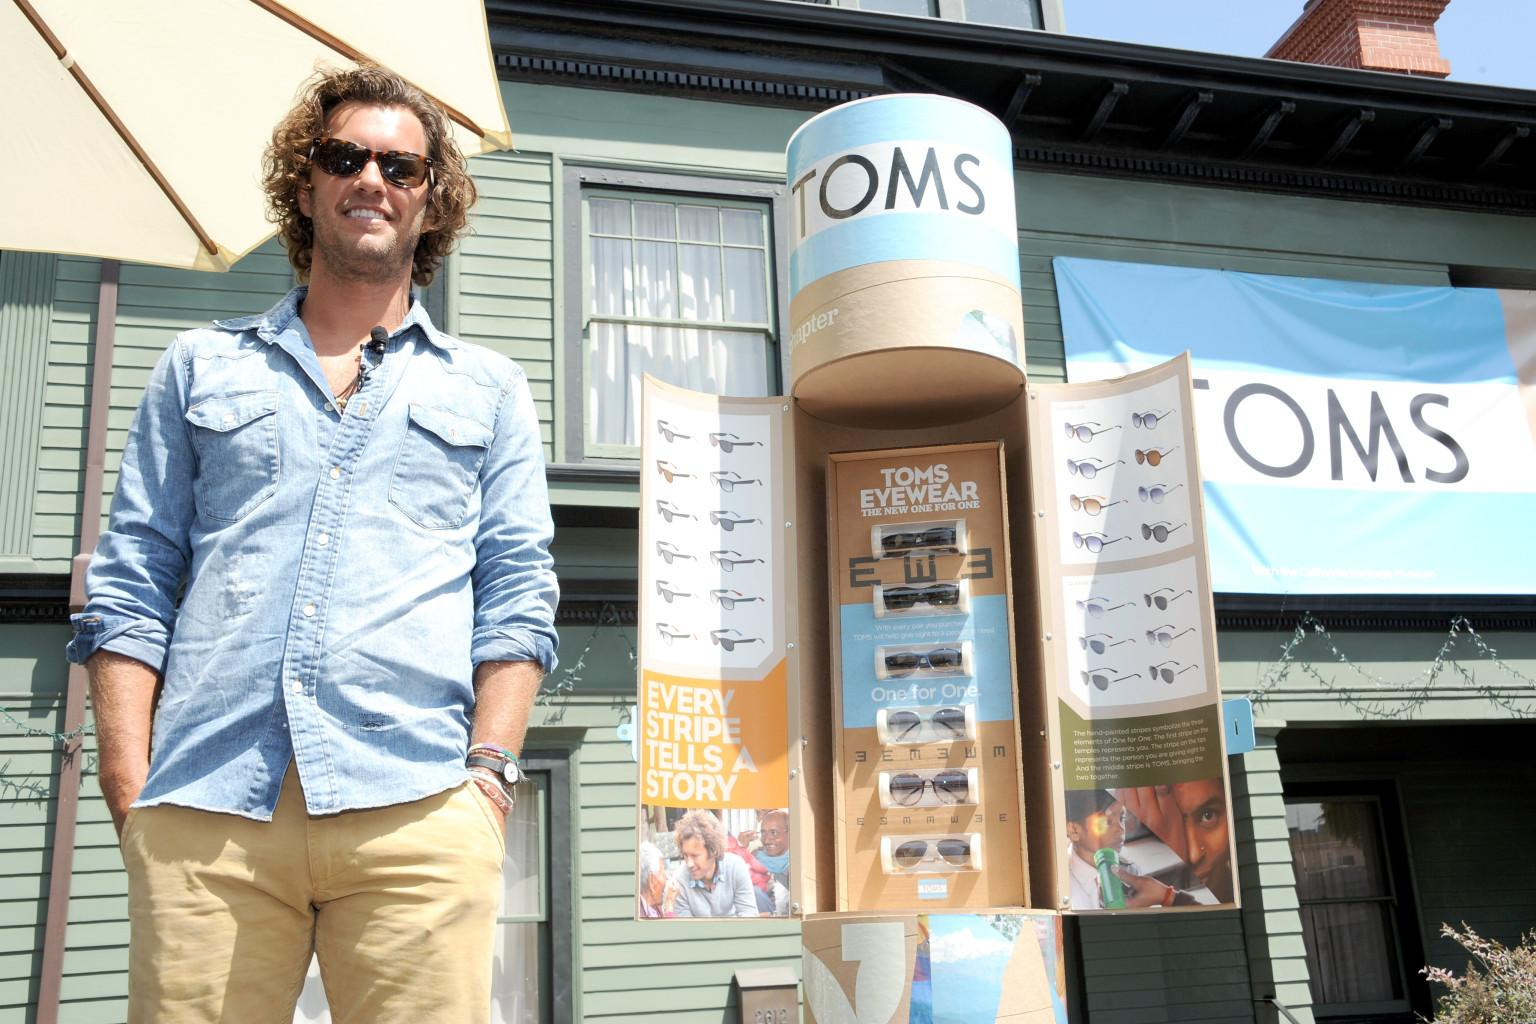 Blake Mycoskie, founder of TOMS, stands near a kiosk of TOMS-branded eyewear. (Photo courtesy of TOMS Shoes)